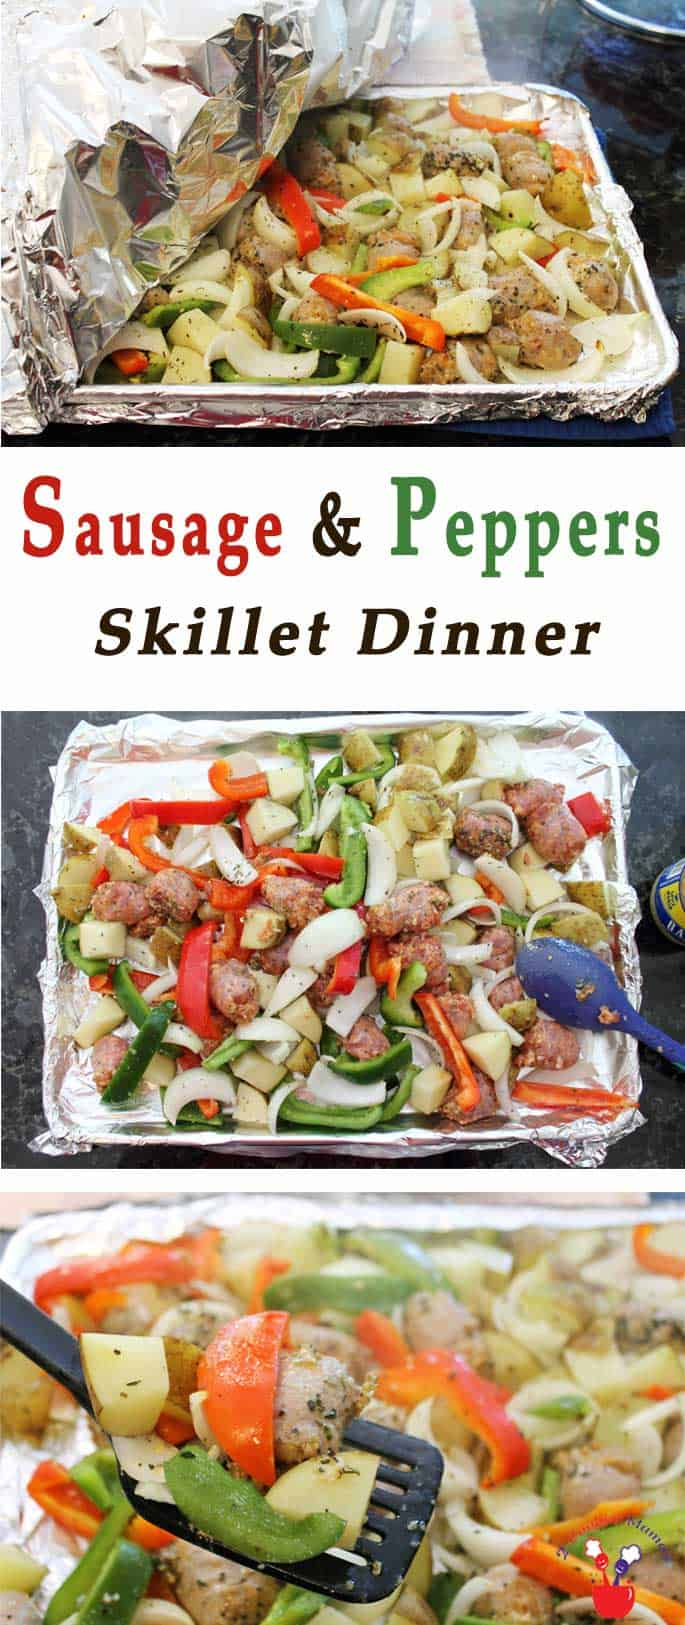 Sausage and Peppers Sheet Pan dinner | 2 Cookin Mamas Our Sausage & Peppers Sheet Pan dinner is a great alternative to grilling. It's delicious, super easy & cleanup is a breeze